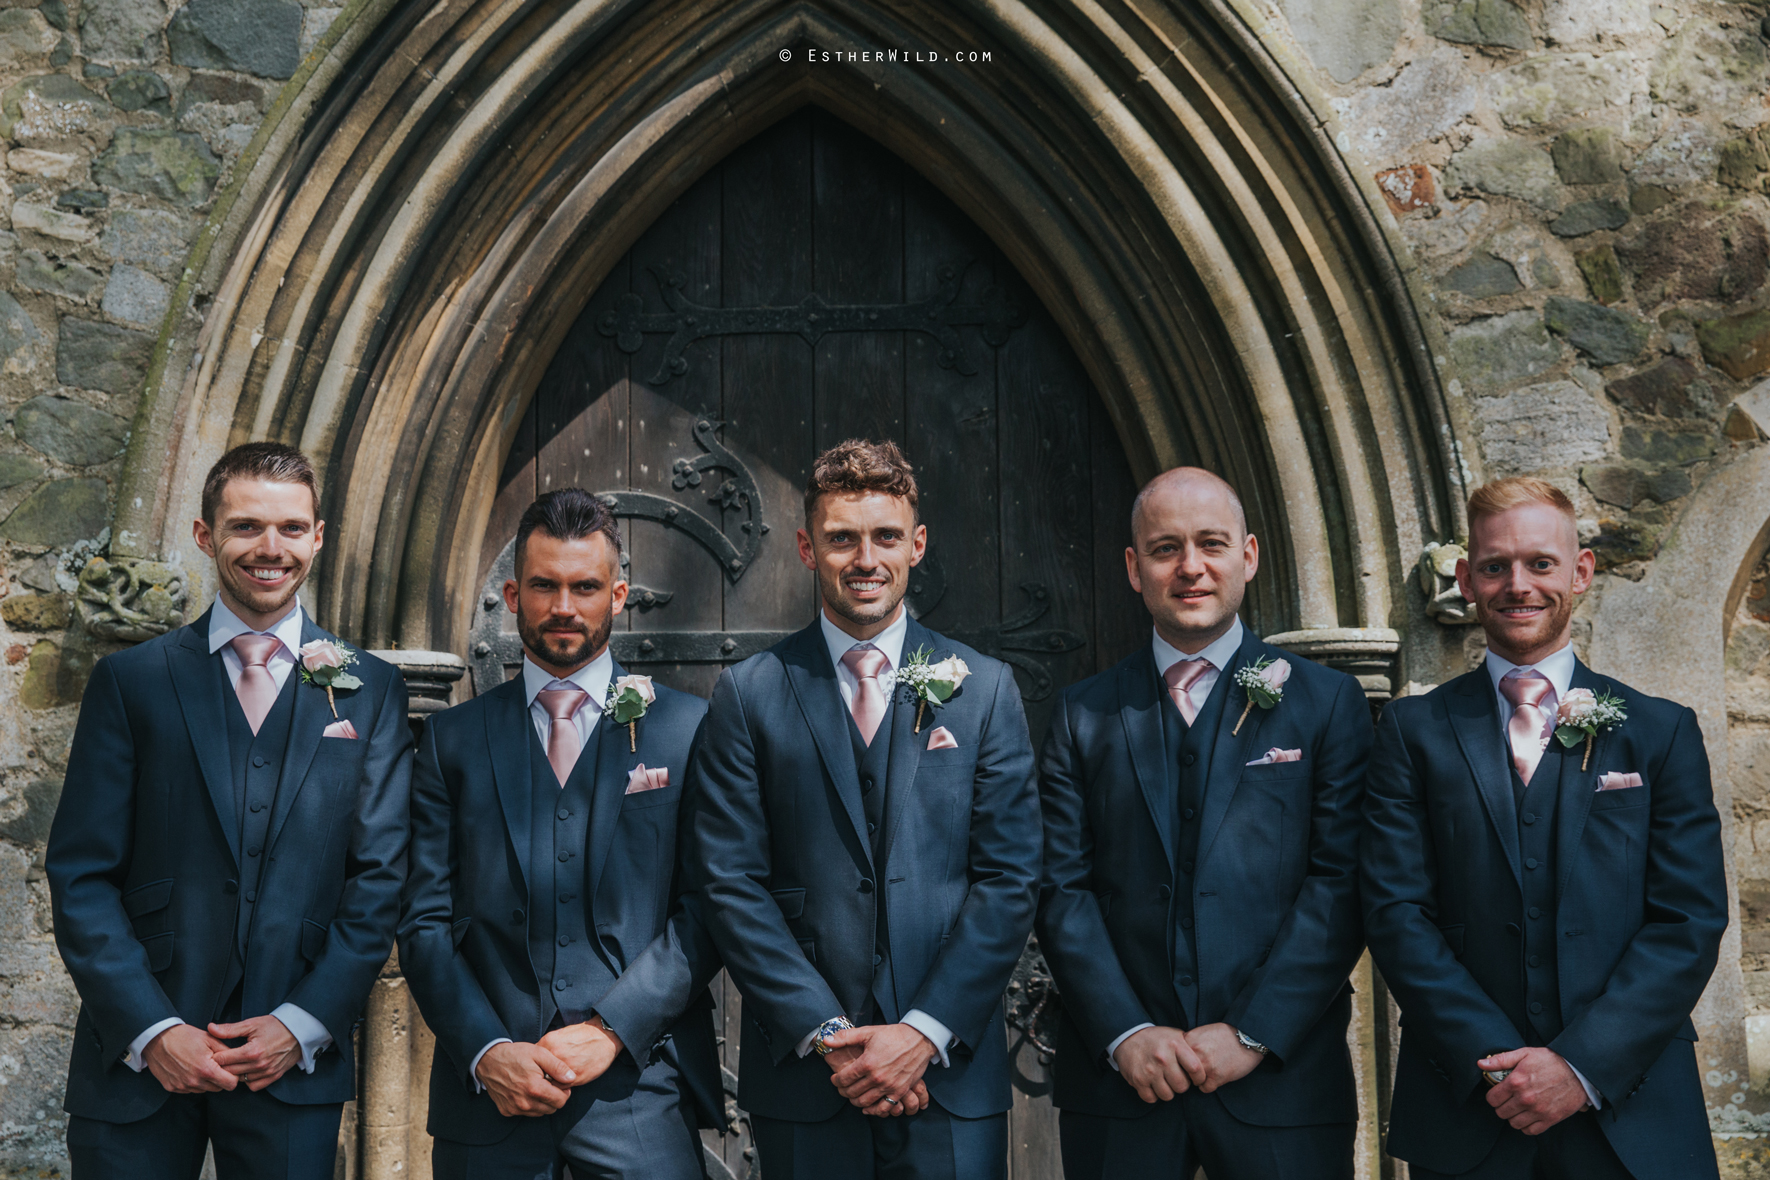 Wootton_Wedding_Copyright_Esther_Wild_Photographer_IMG_1332.jpg